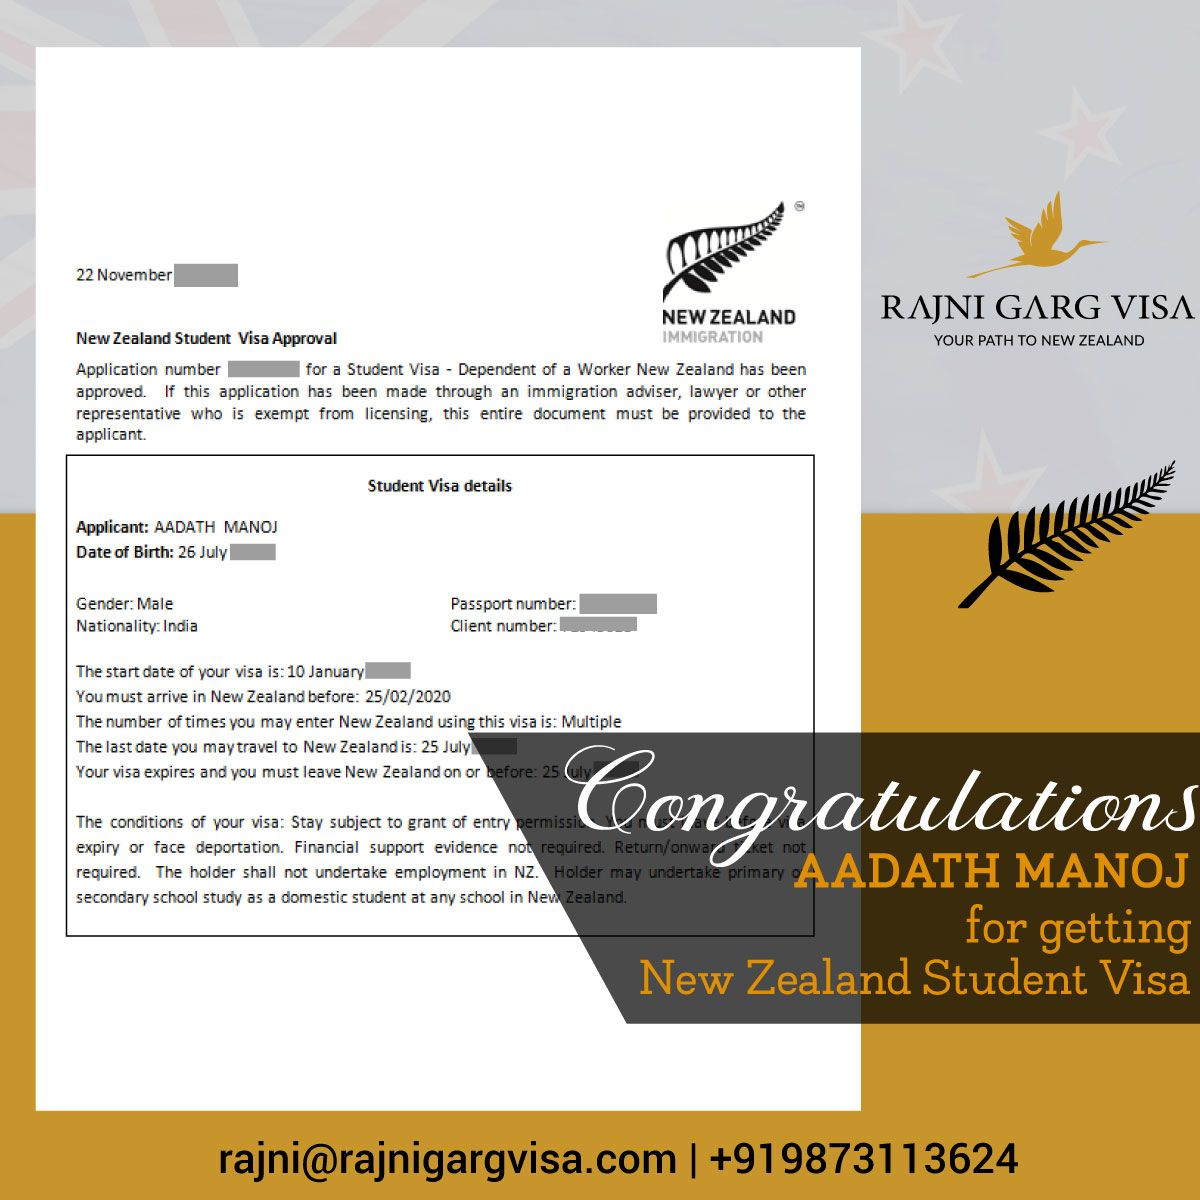 We At Rajni Garg Visa Make Sure To Provide The Best Services To